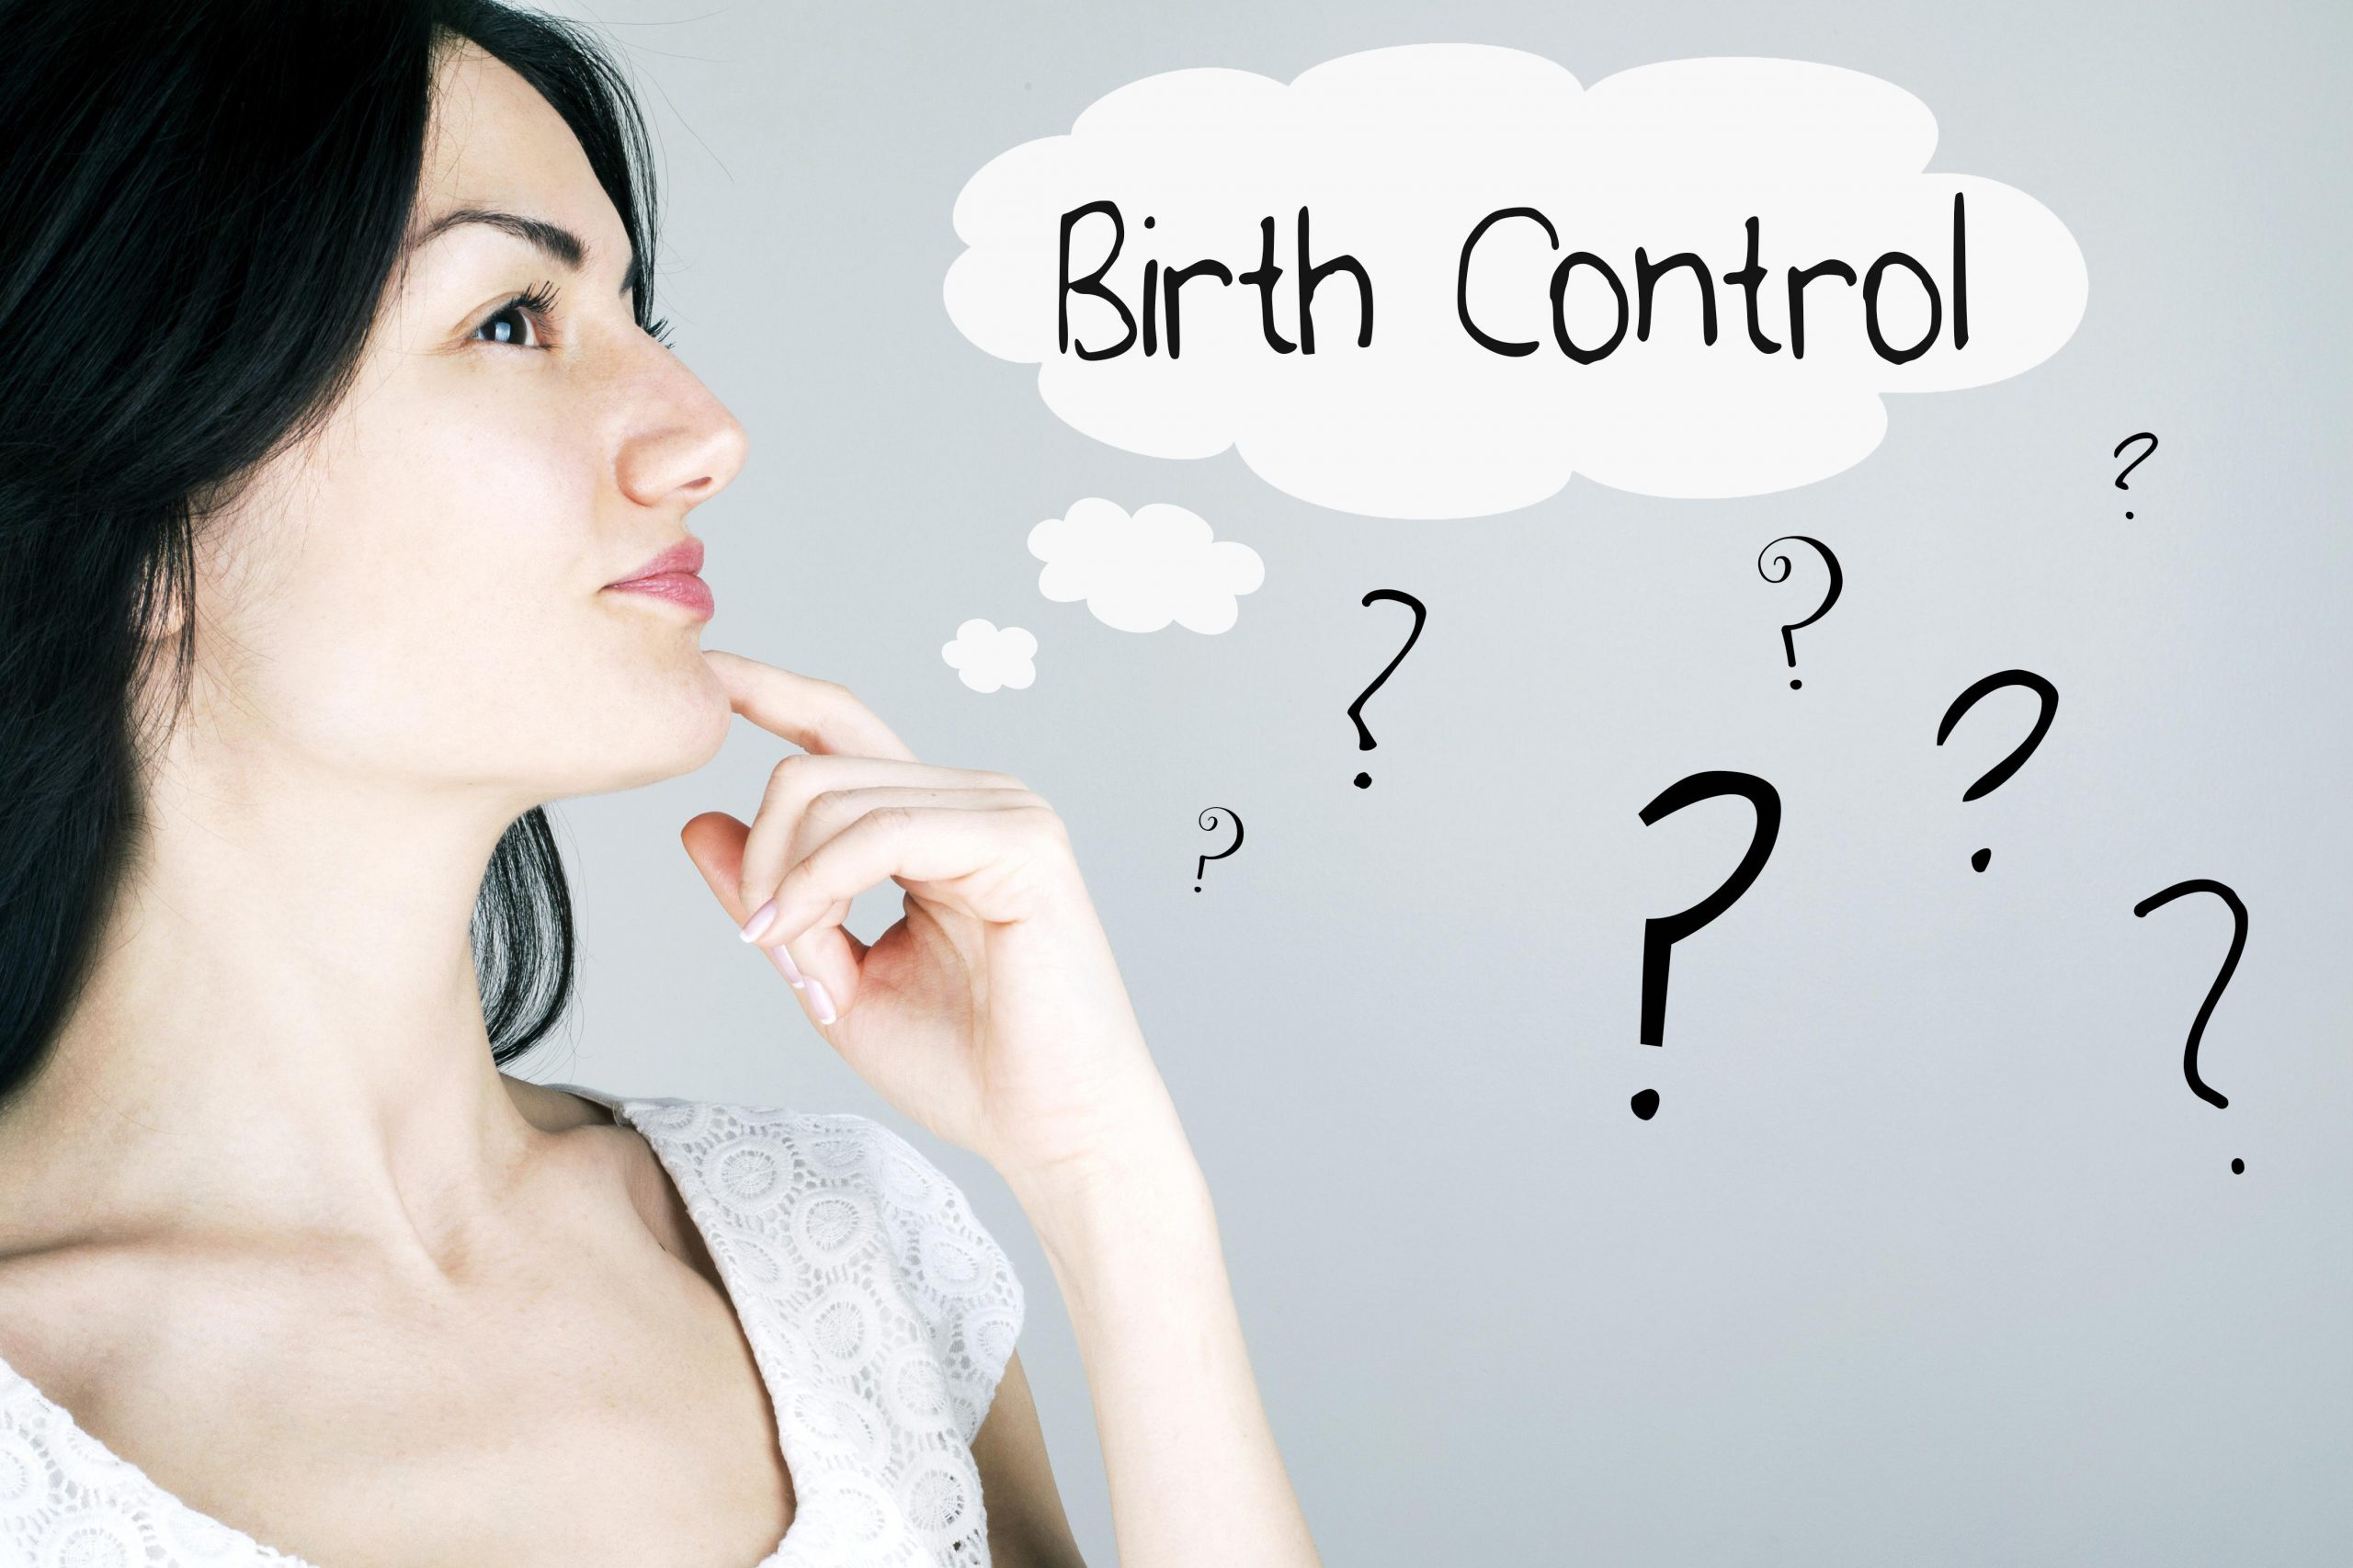 lady with finger on chin thinking about birth control